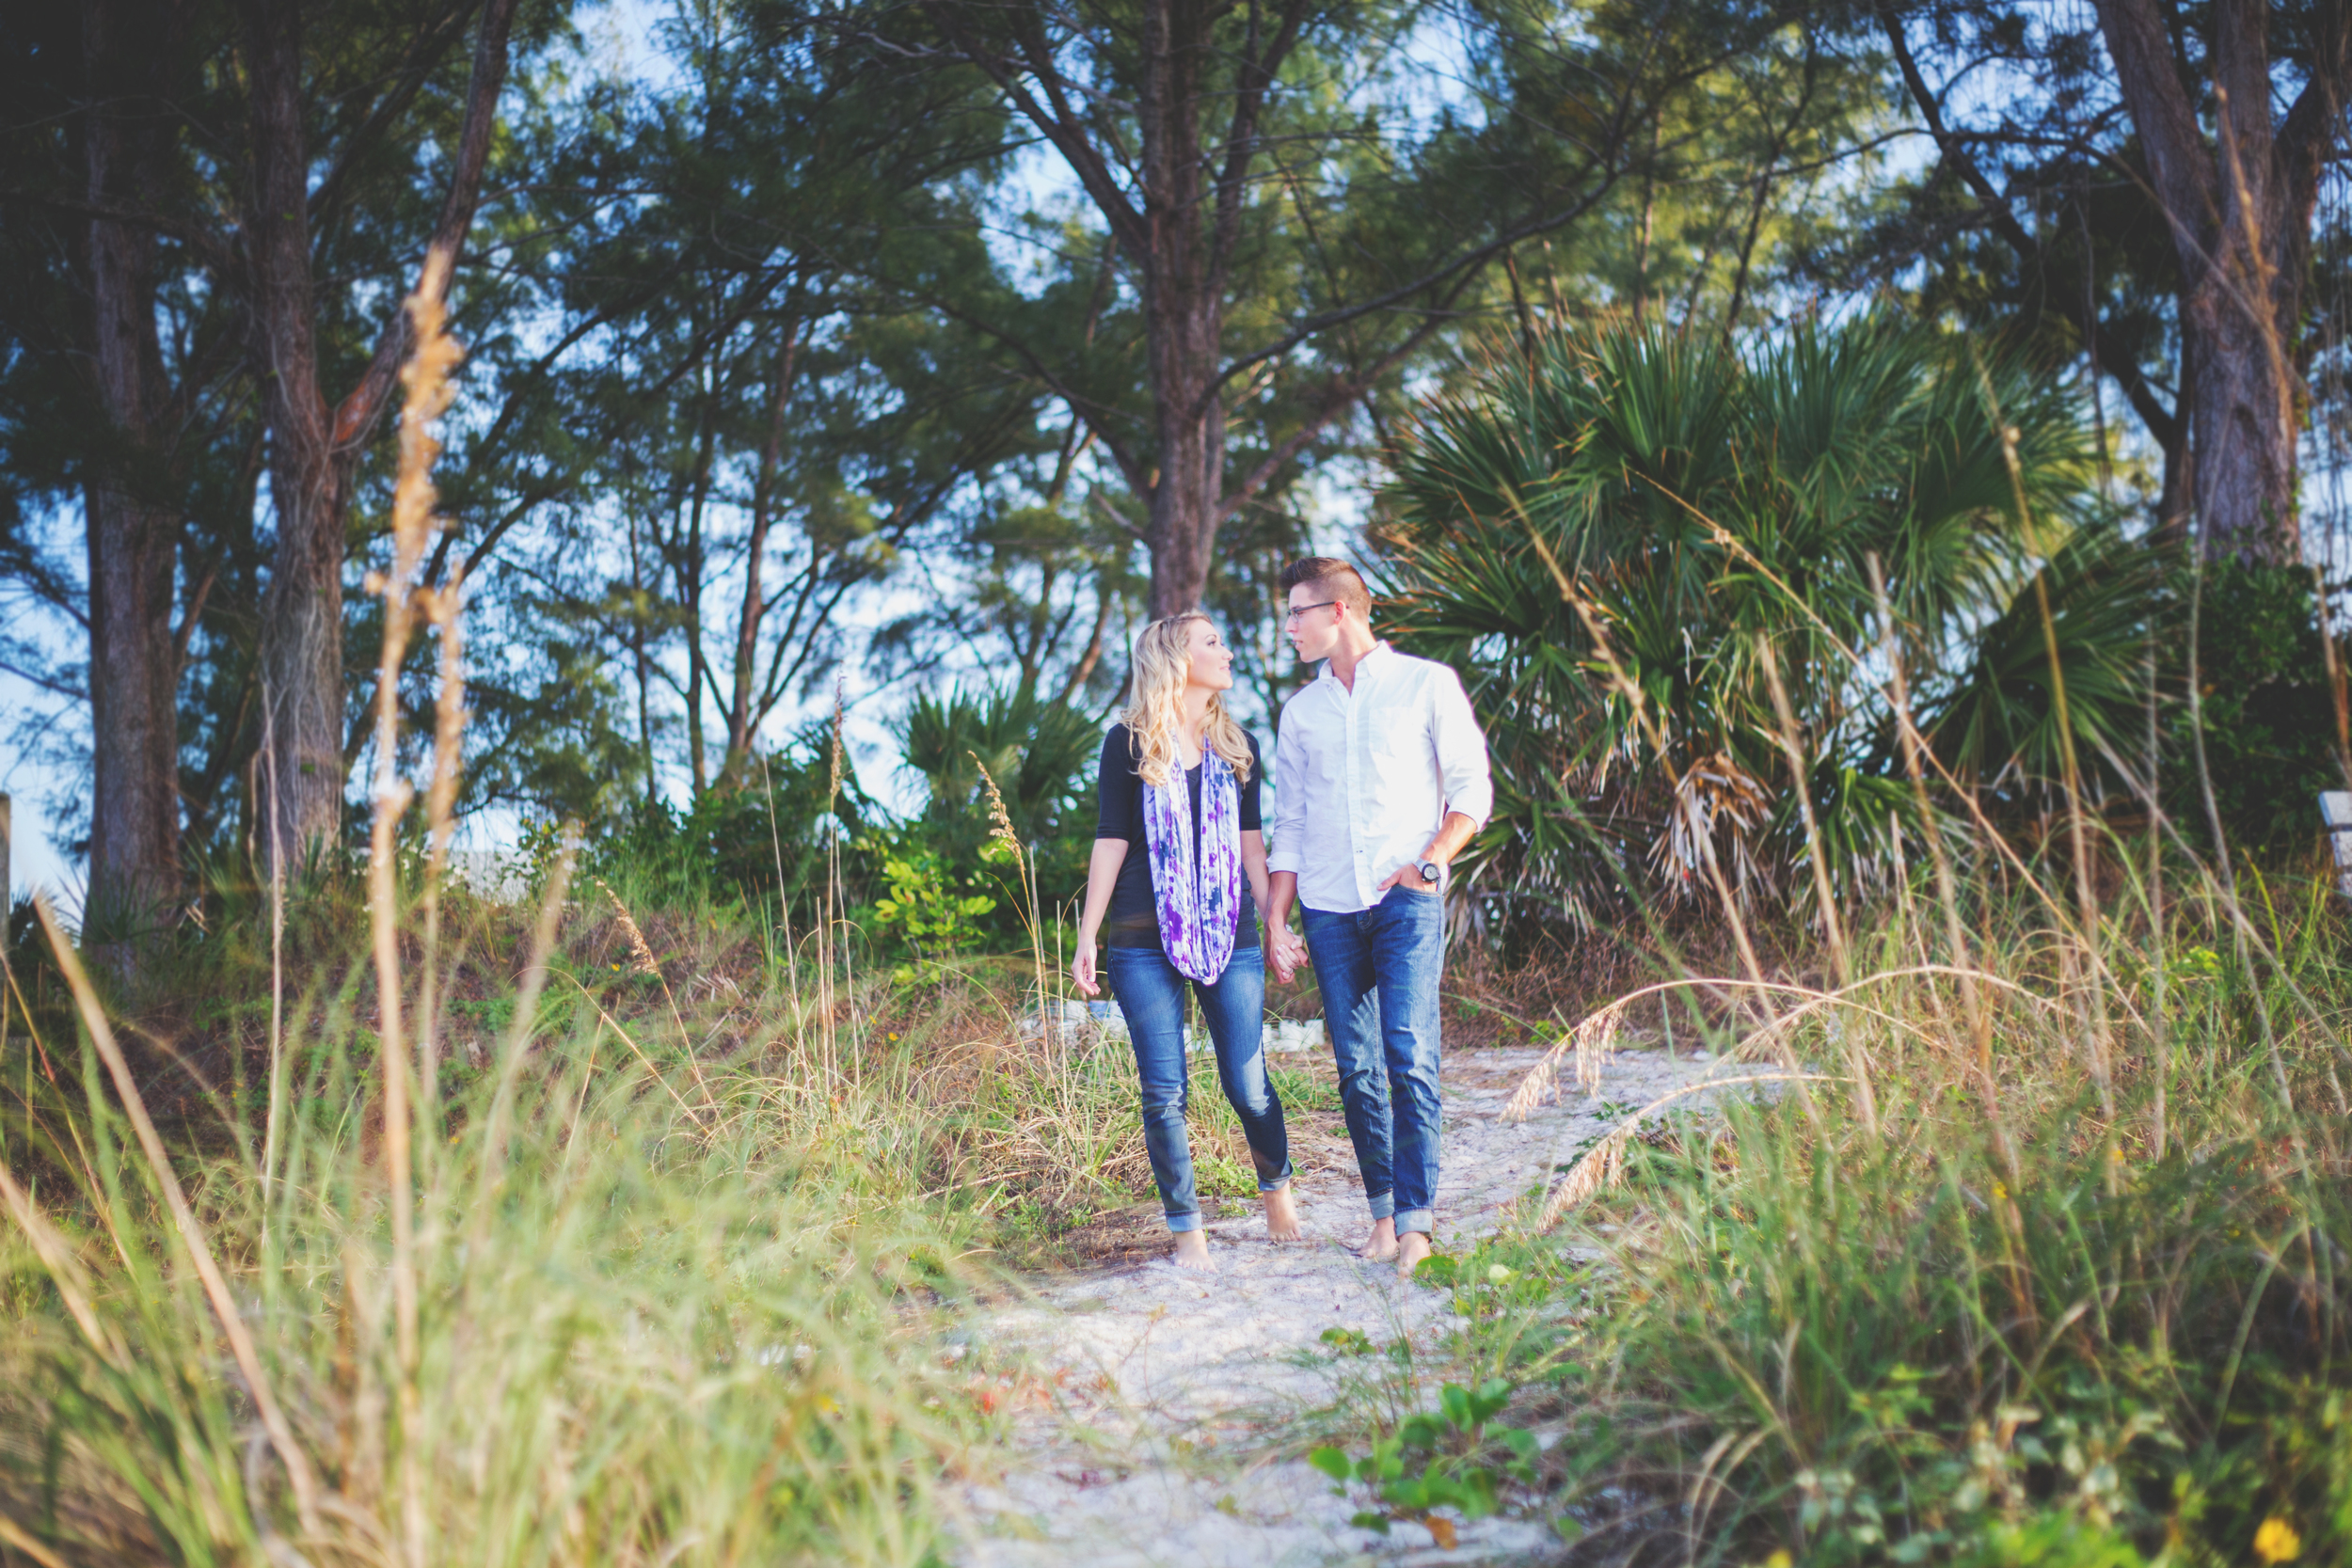 Emily + Trent - Sarasota Engagement and Wedding Photography - Sarasota Engagement and Wedding Photographer - Emily & Co Photography - Cozy Beach Engagement